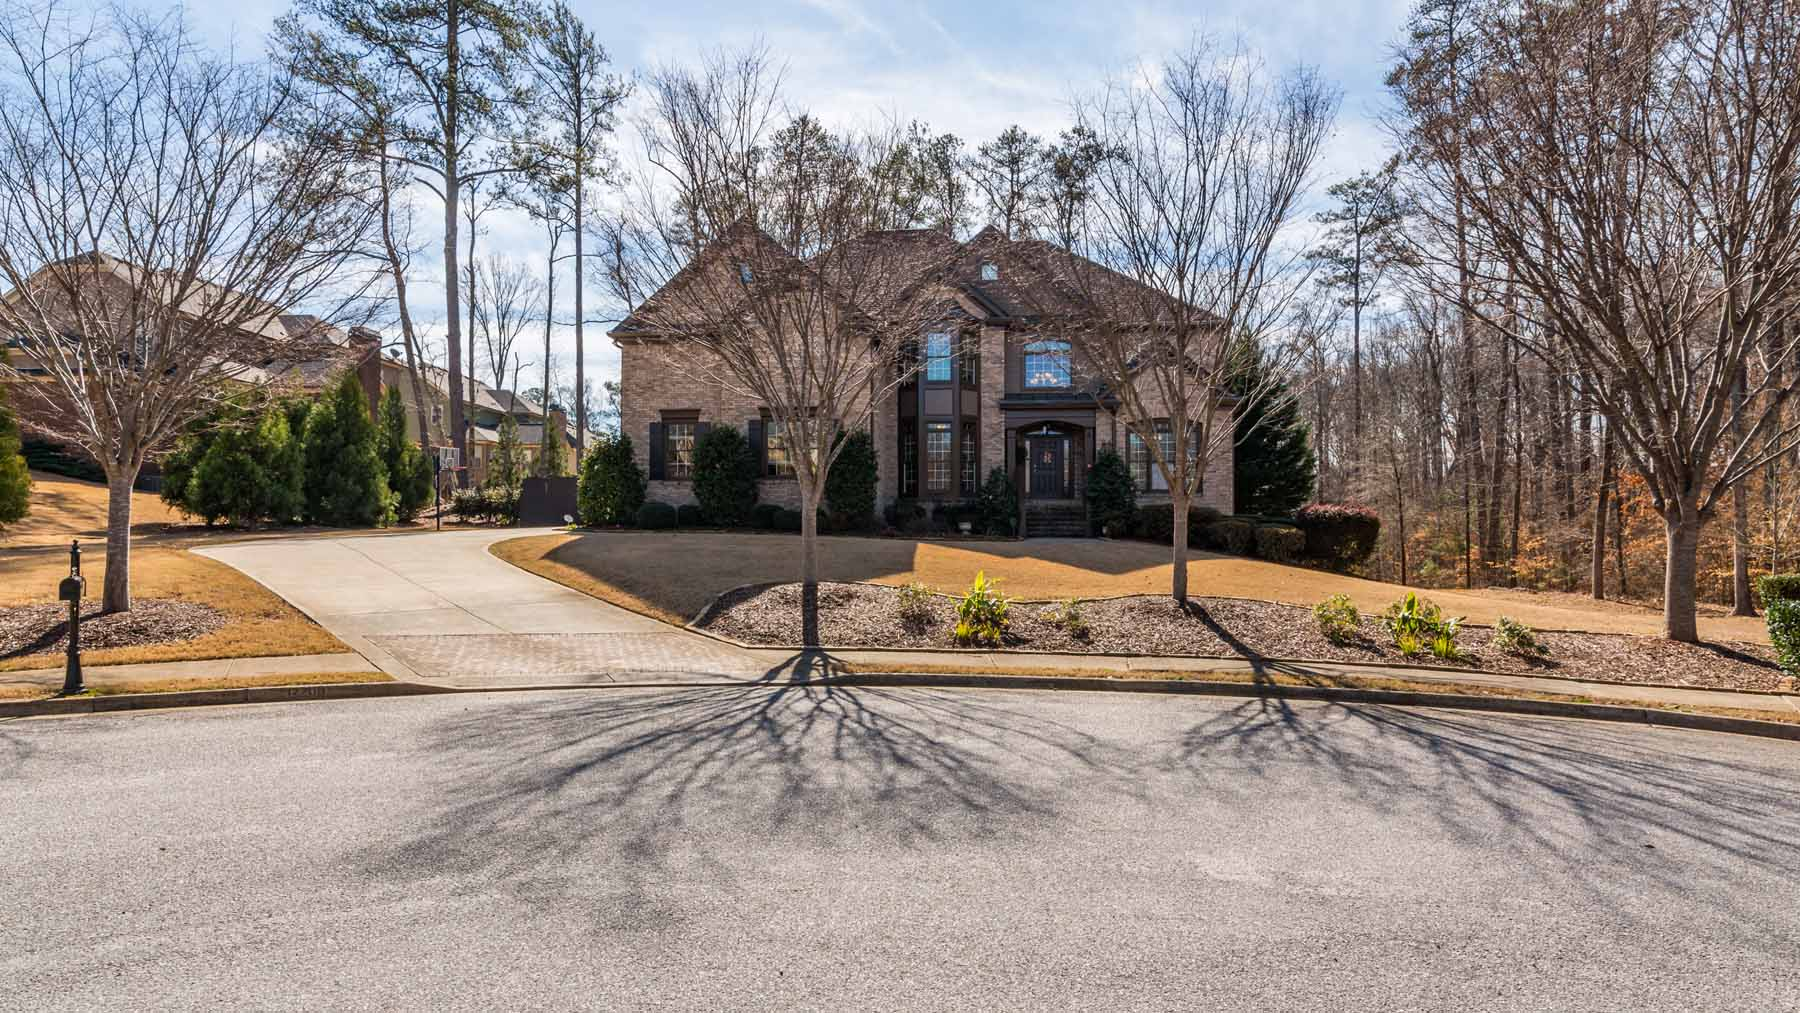 Villetta a schiera per Vendita alle ore Unbelievable Home With Resort-Like Pool In Perfect Alpharetta Location 12200 McCoy Way Alpharetta, Georgia, 30004 Stati Uniti